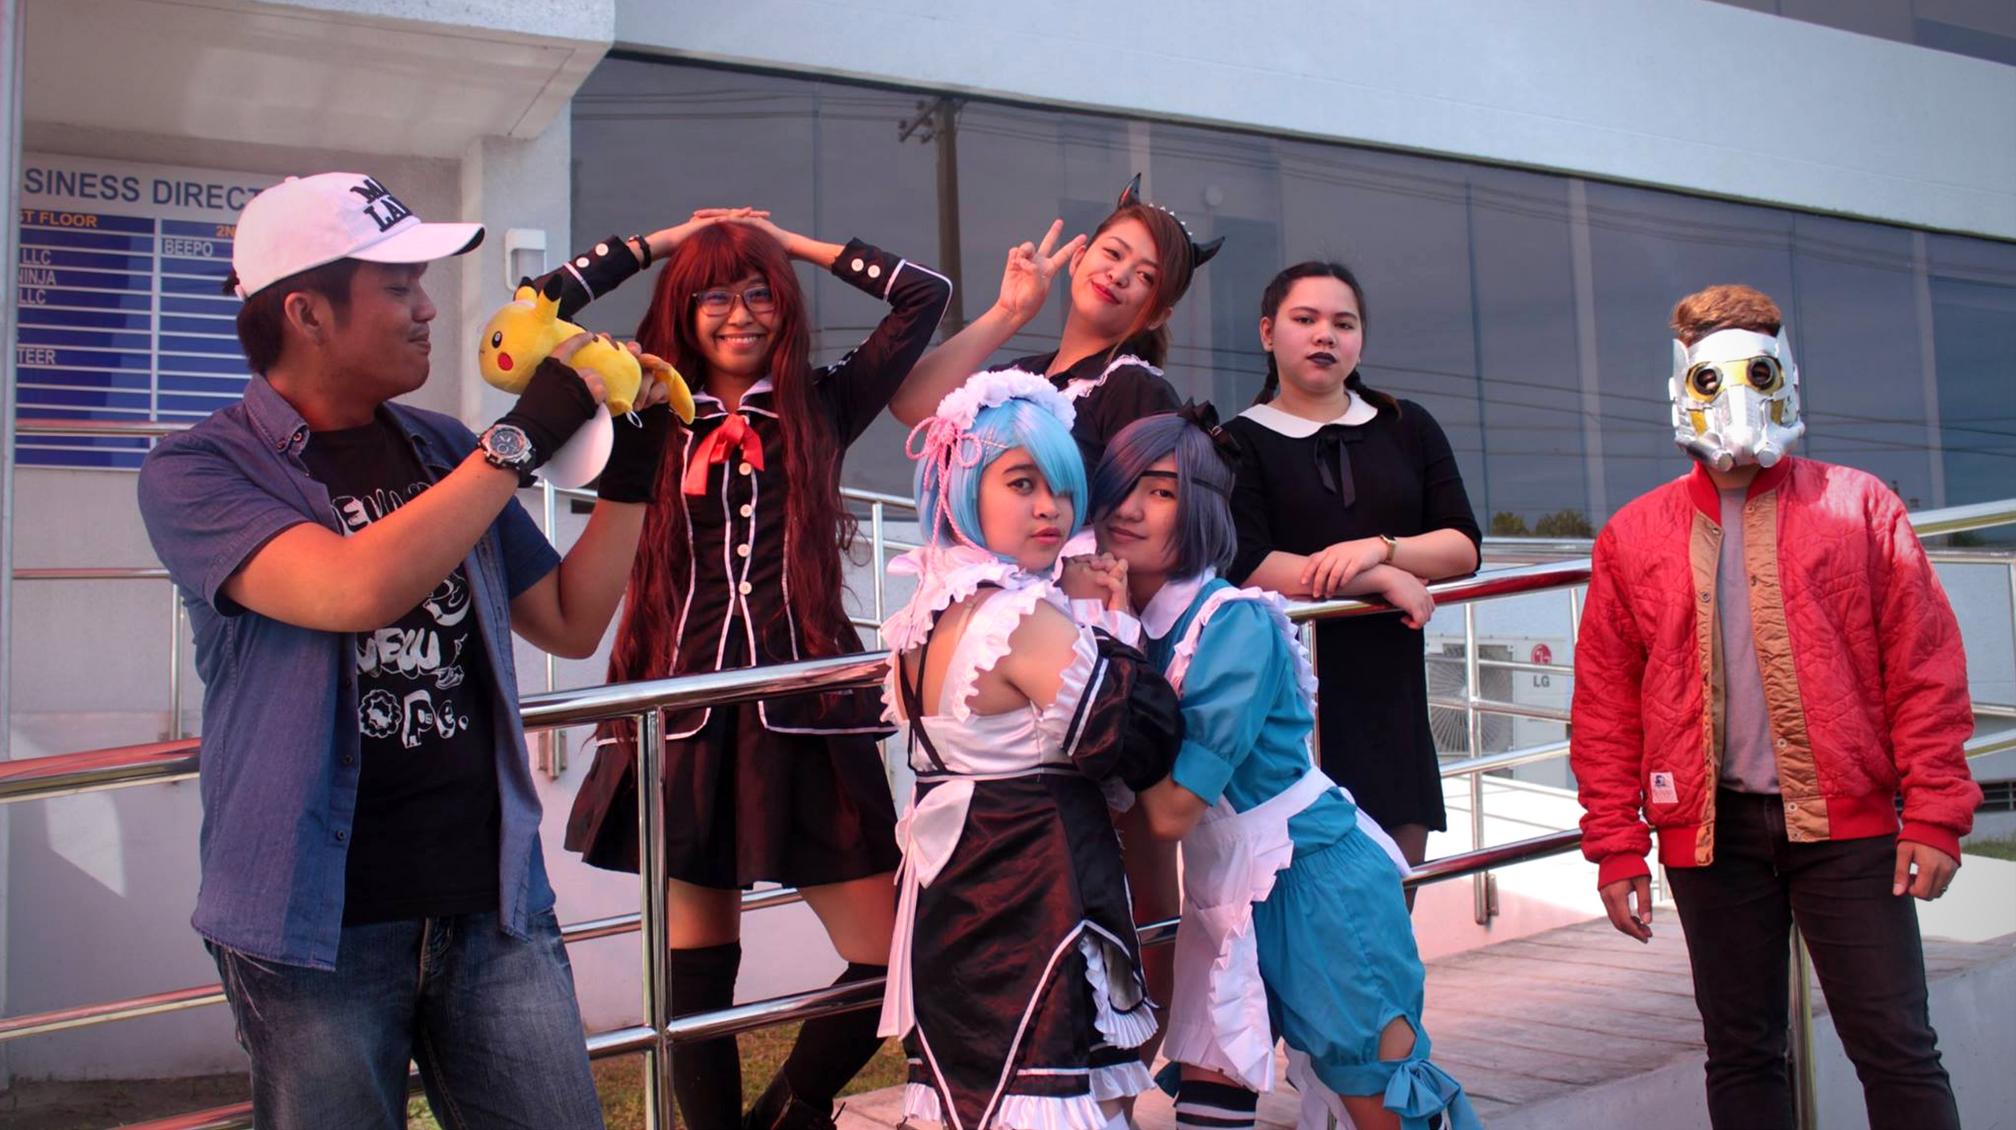 Photo of Beepo employees on their cosplay costume.